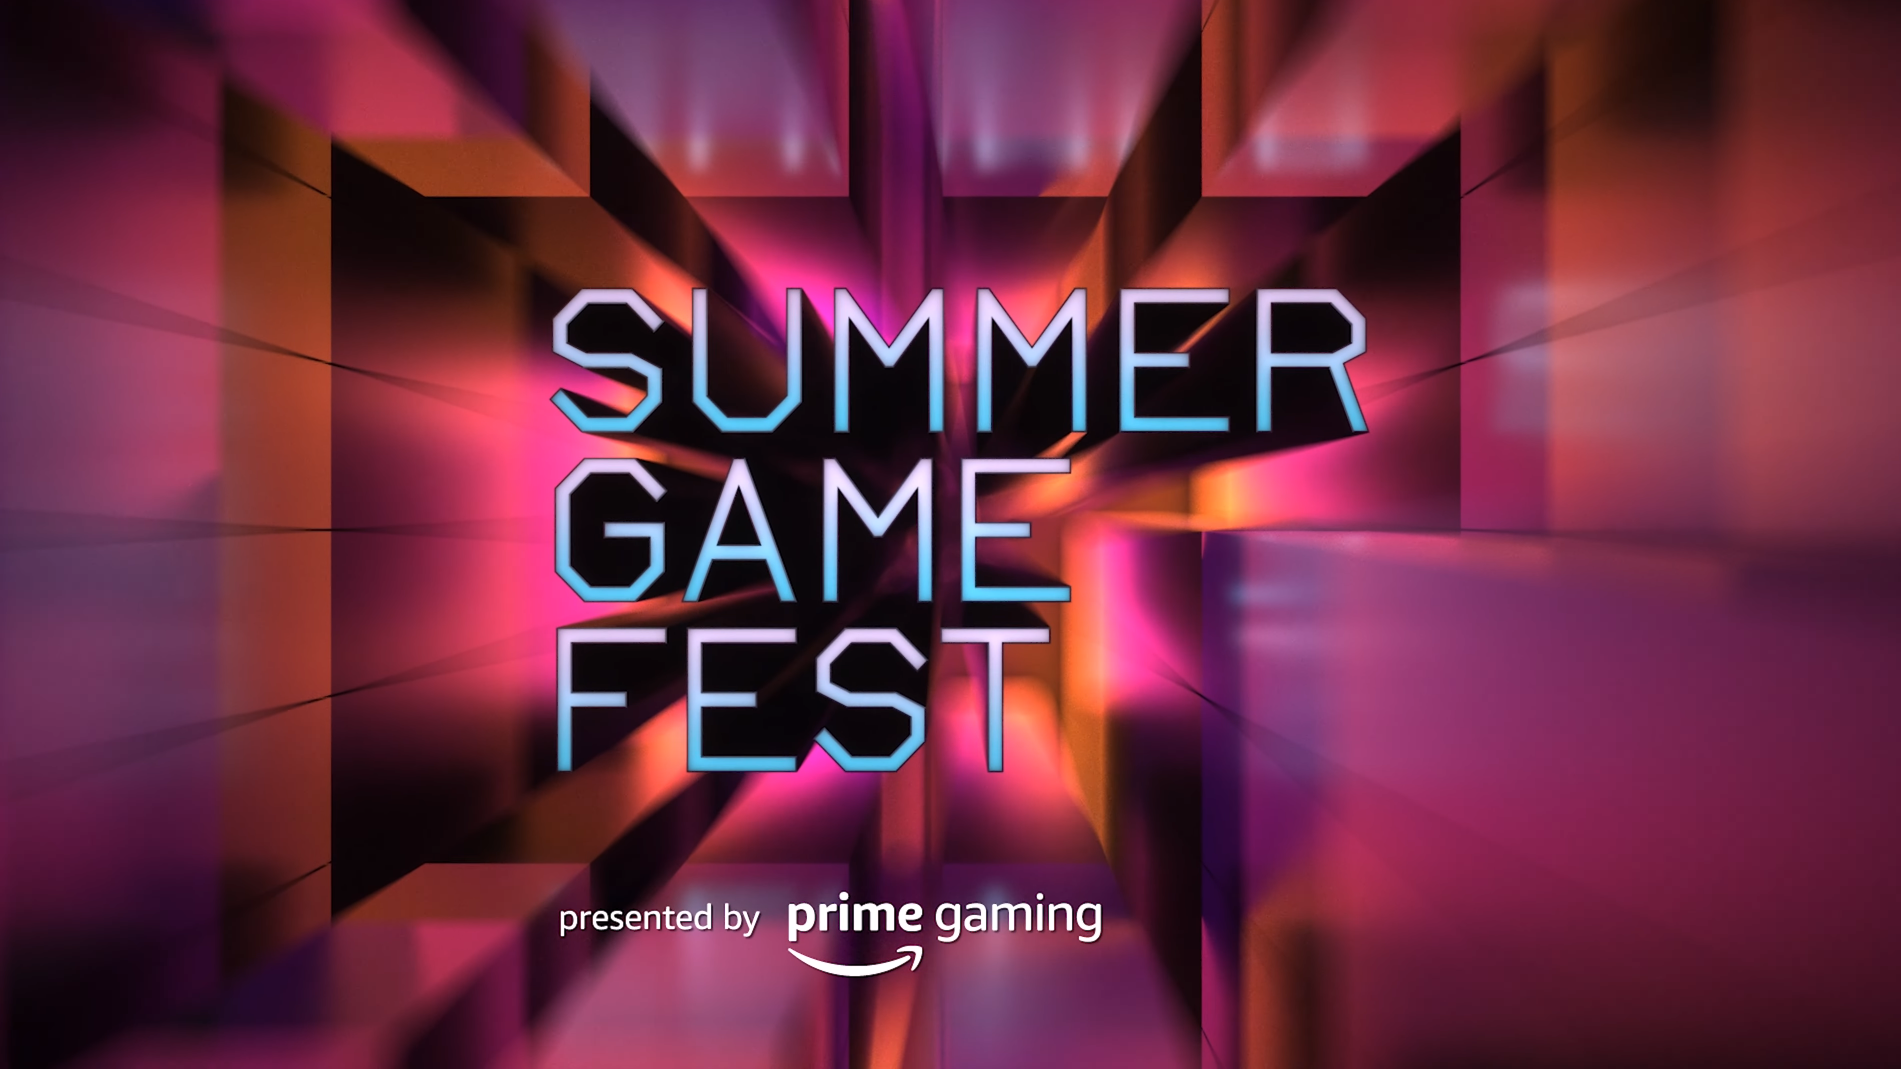 Summer Game Fest 2021: dates, schedule and what you need to know